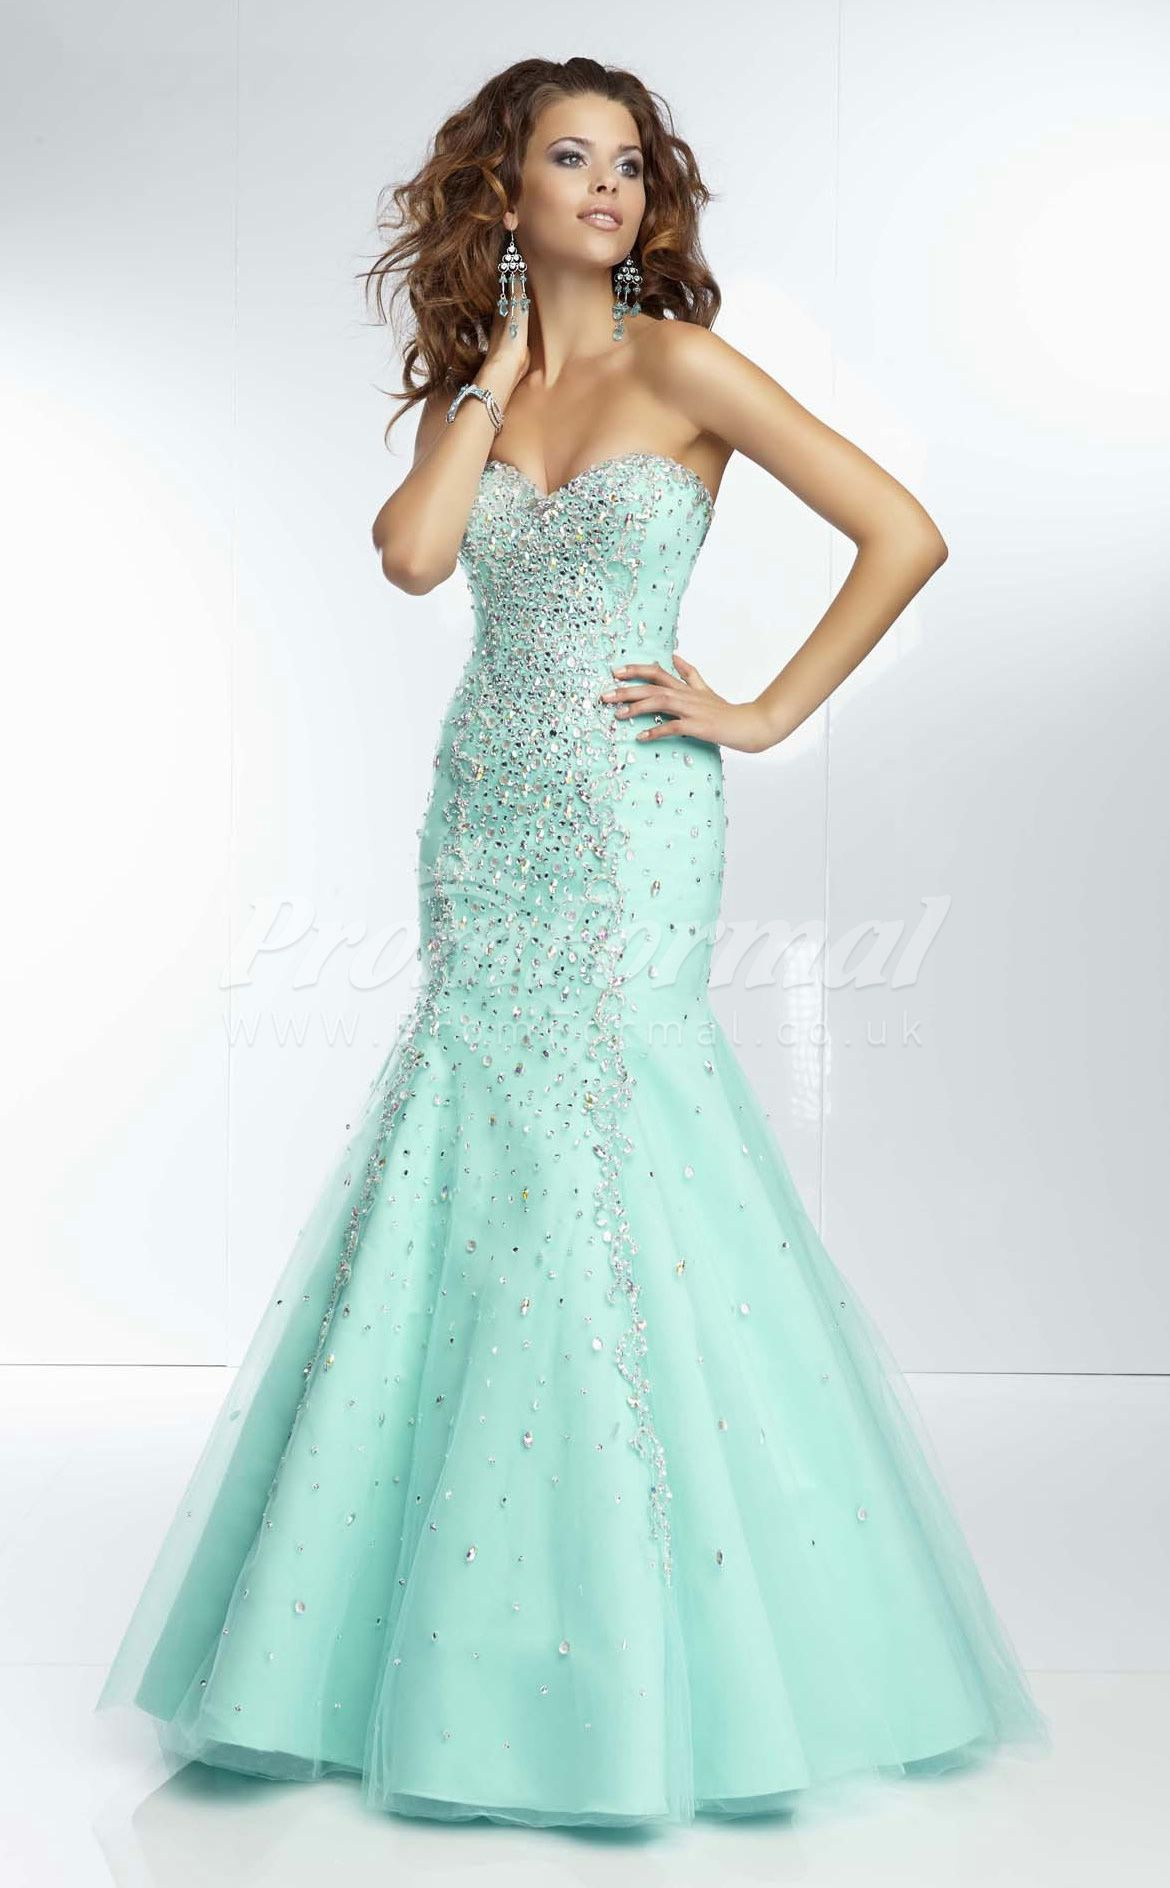 Tulle Mermaid Sleeveless Prom Dress with Beading and Sequins ...